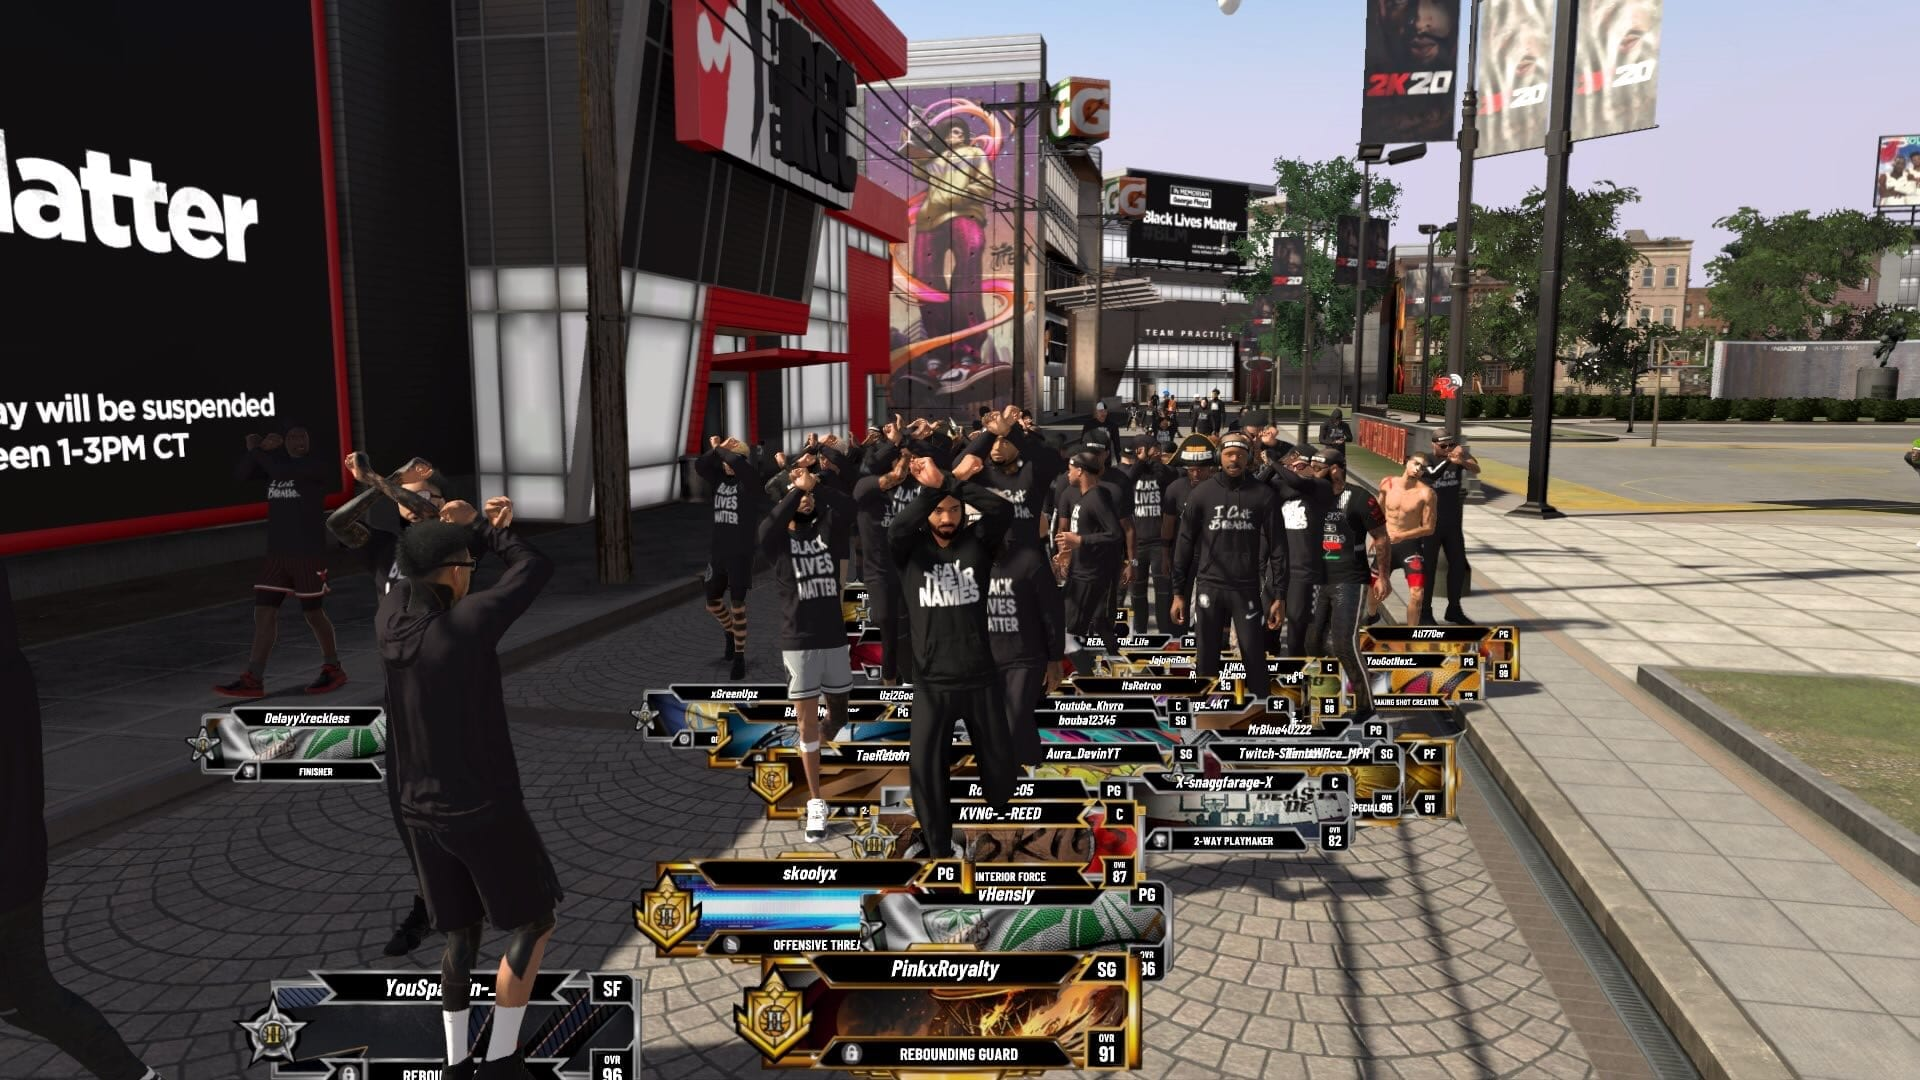 NBA 2K20 Adds Black Lives Matter T-Shirts To The Game